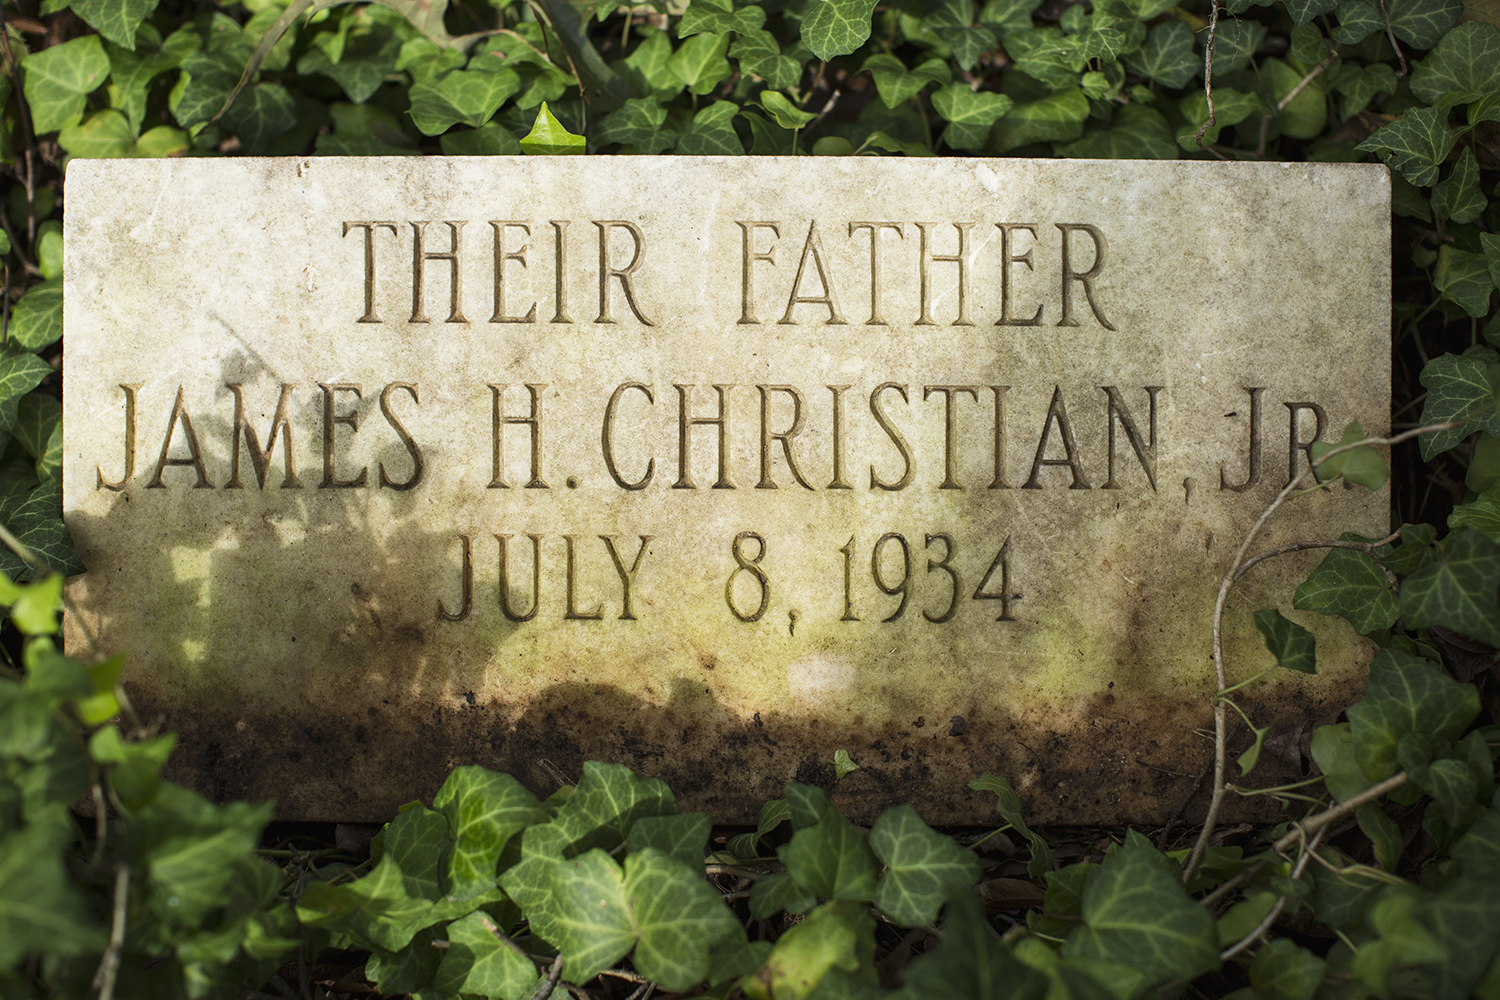 James Christian grave marker, cleared of vines. East End Cemetery, Henrico County, Virginia, October 2015. Photo: ©BP